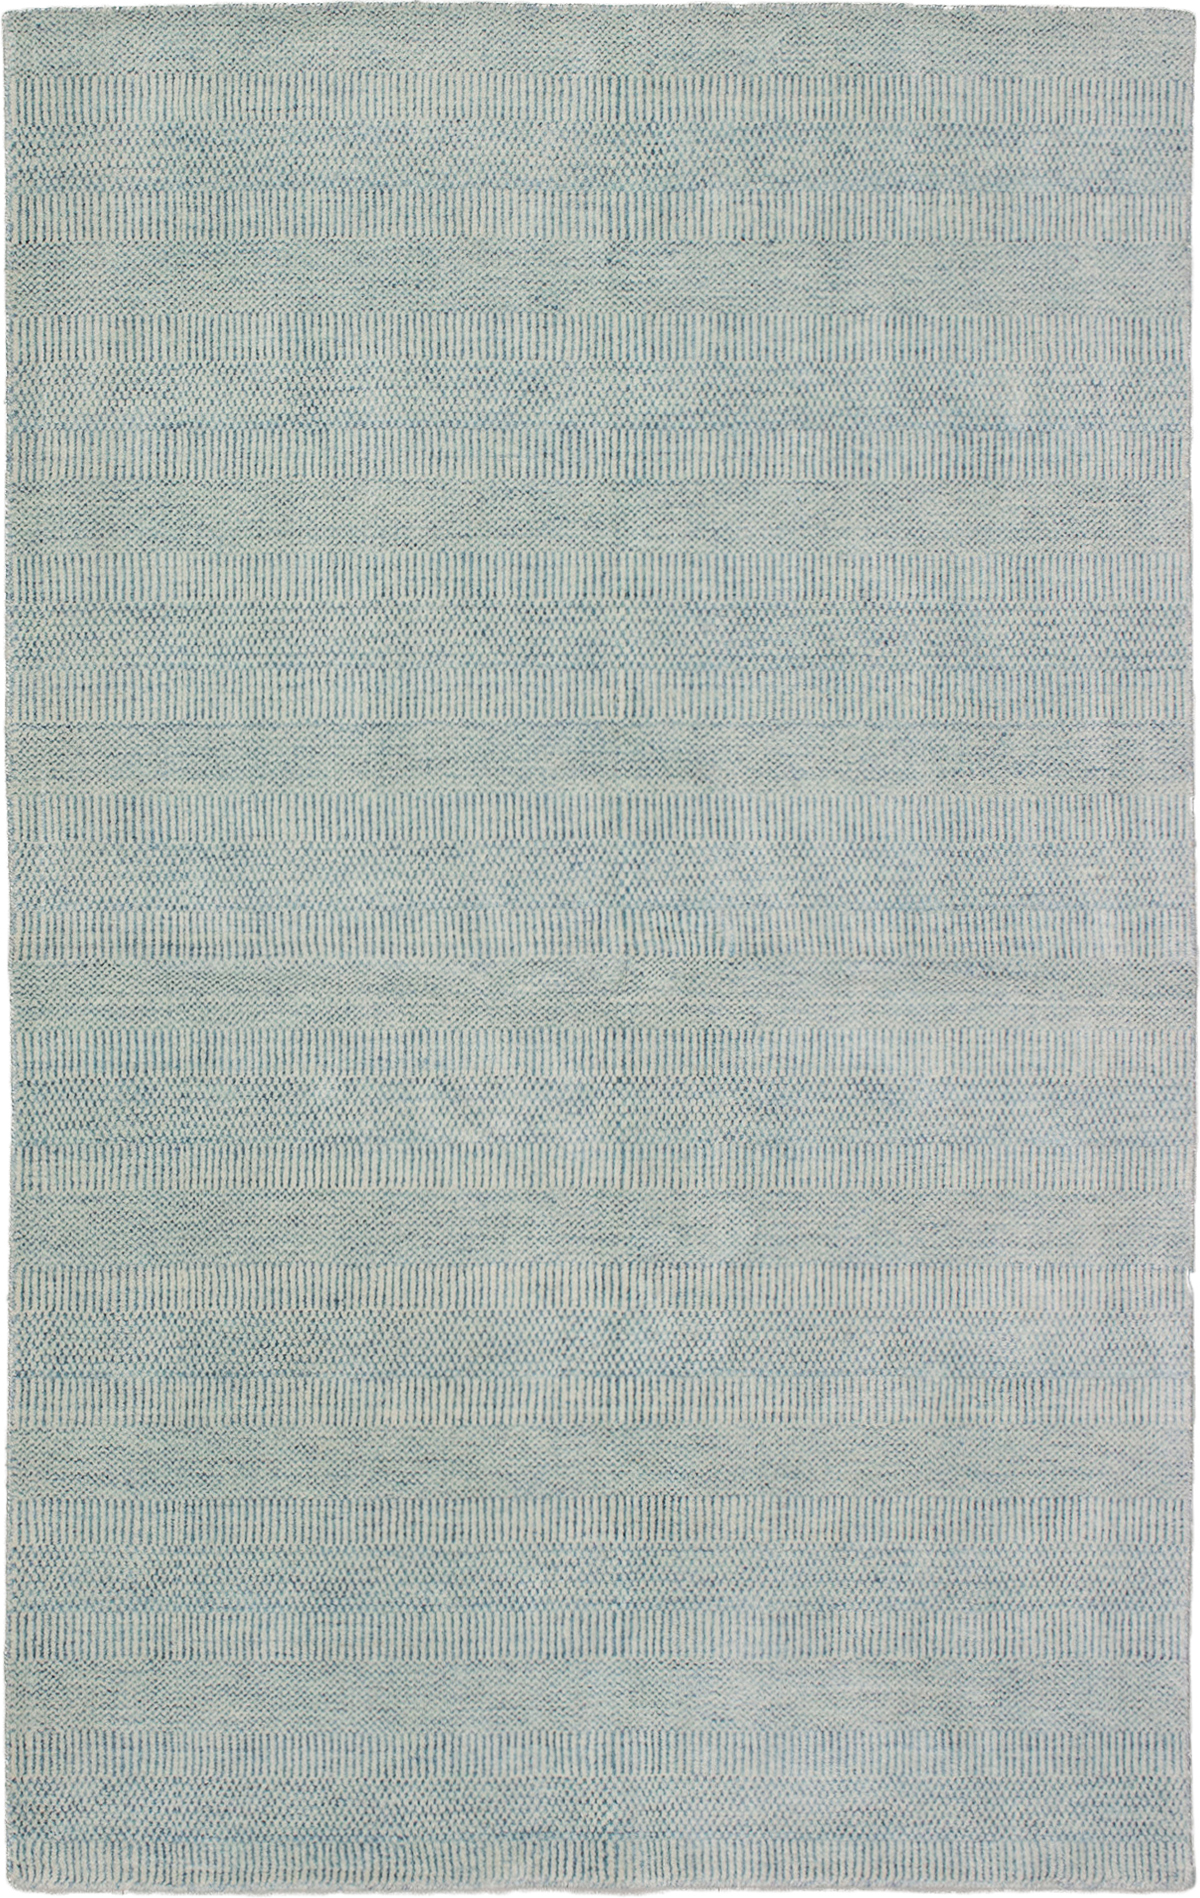 """Hand-knotted Pearl Light Blue   Rug 5'0"""" x 8'0"""" Size: 5'0"""" x 8'0"""""""